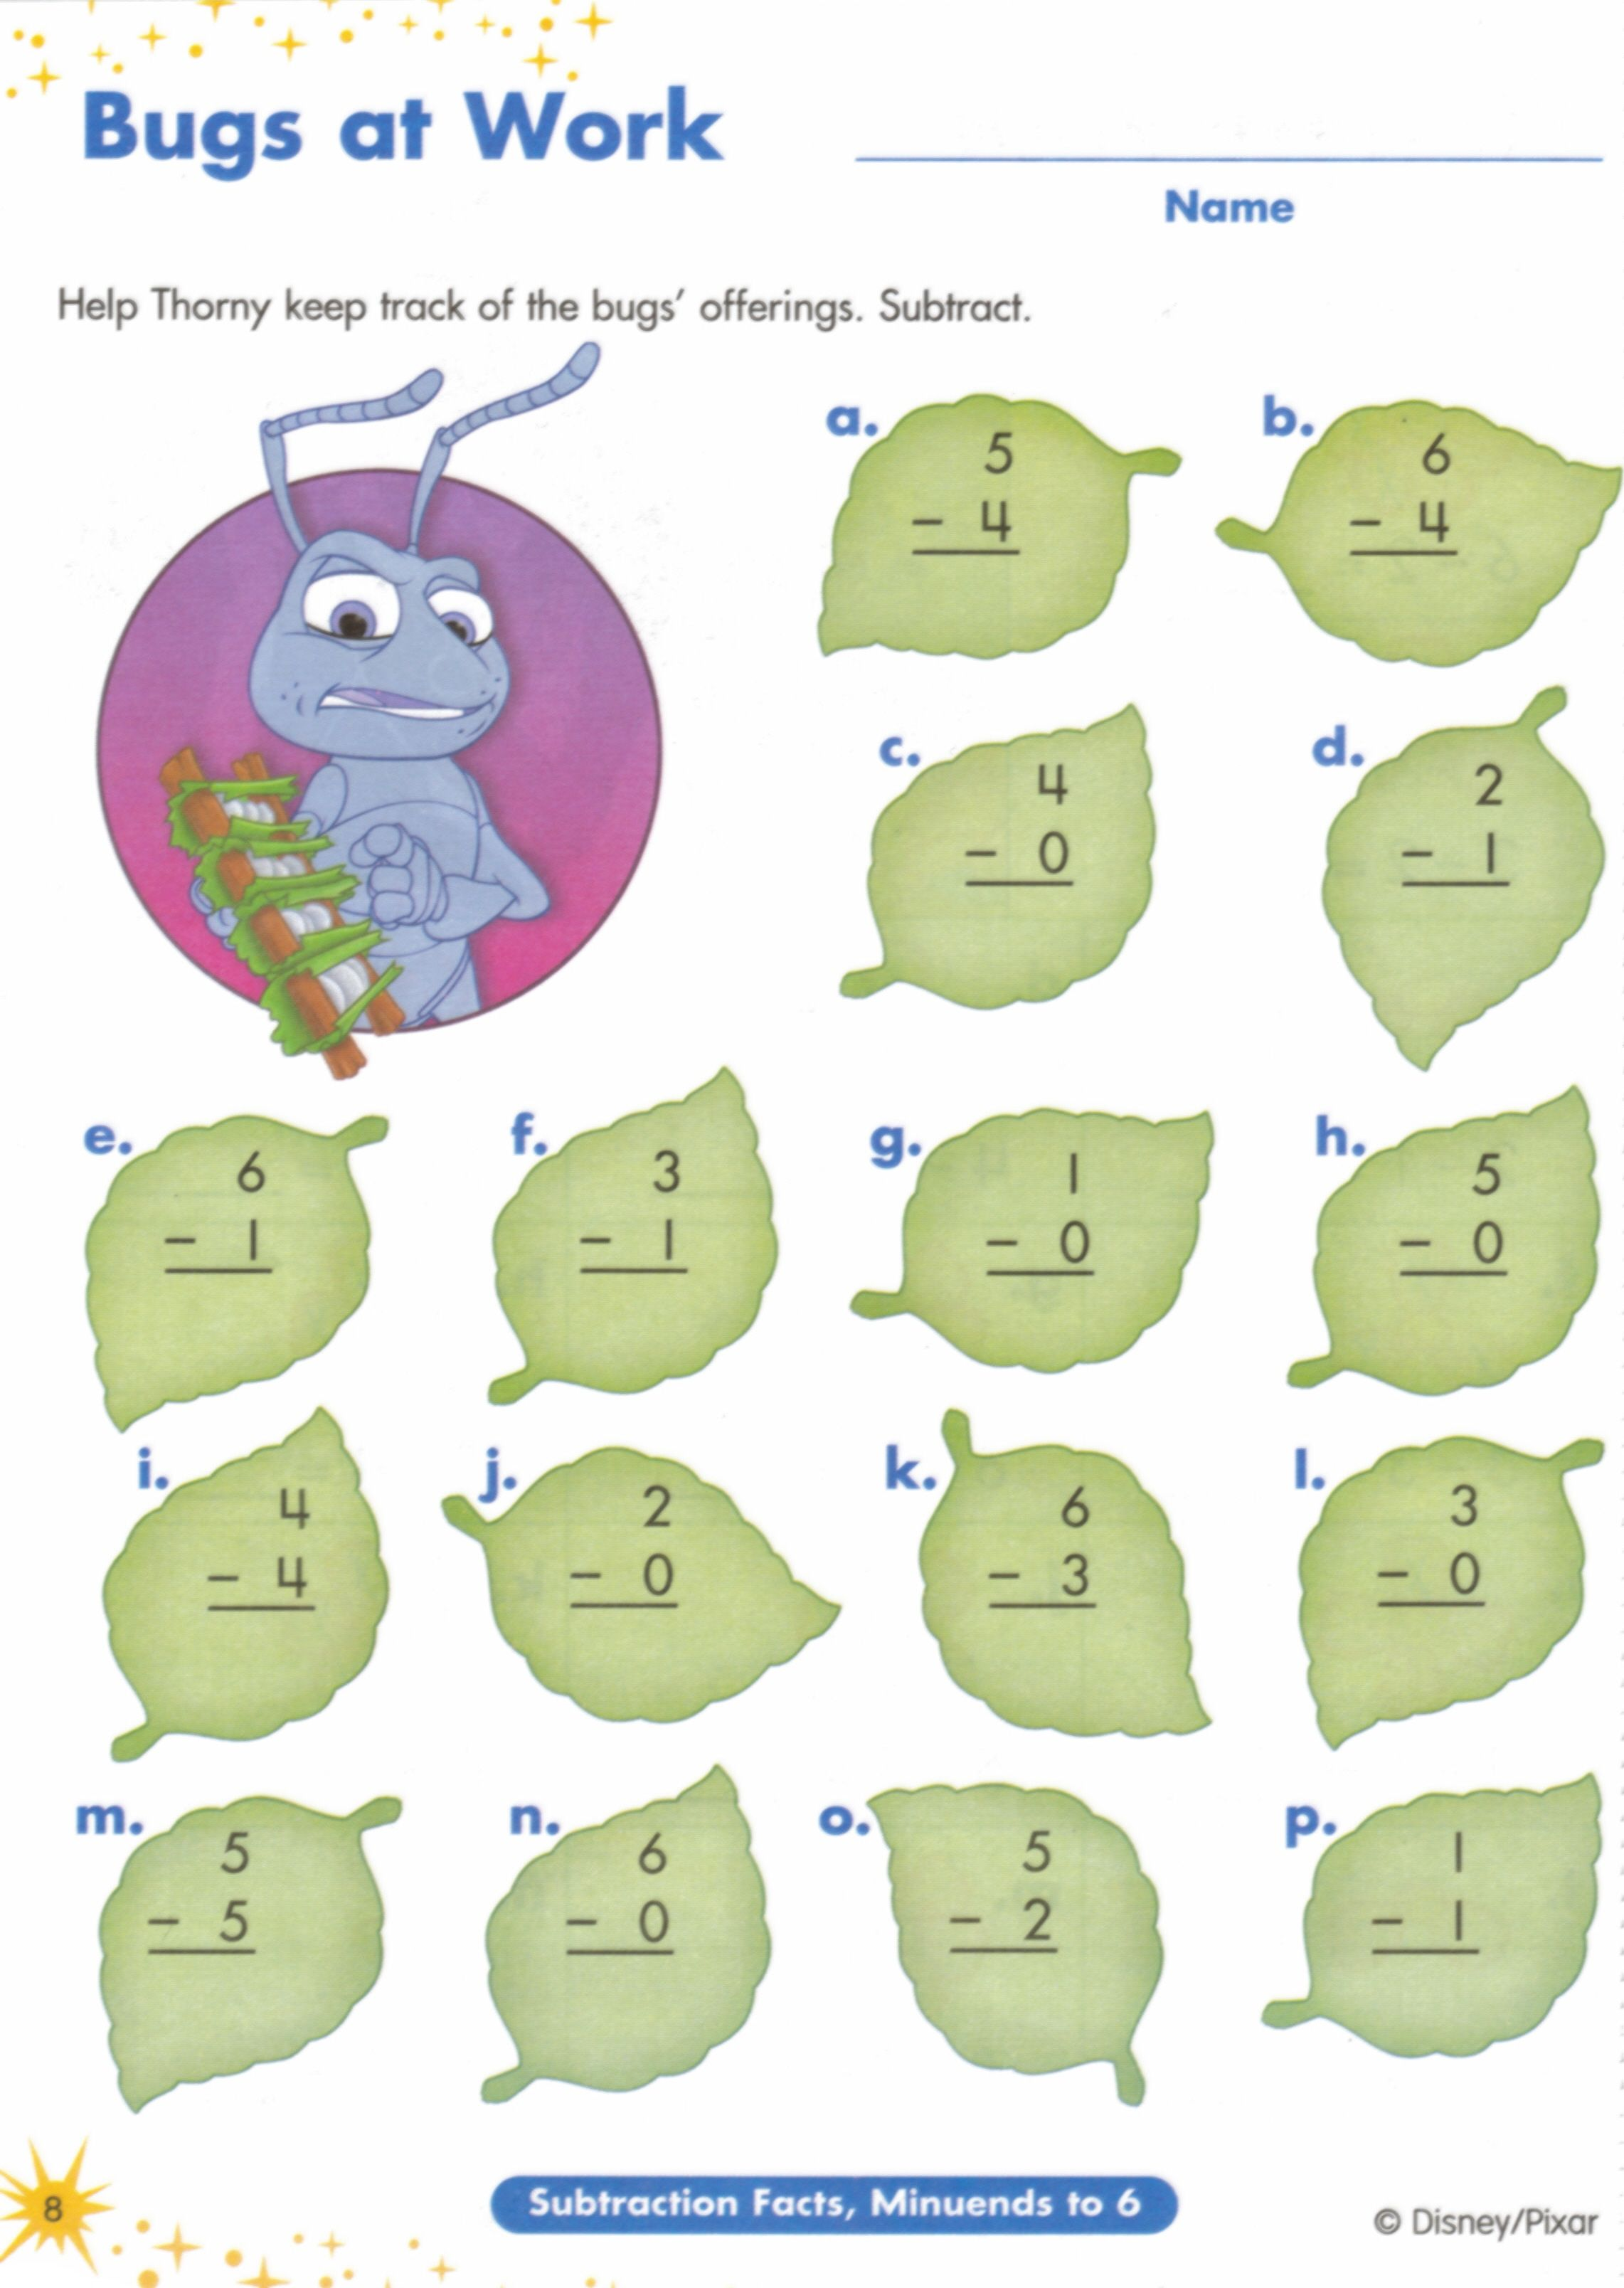 Aldiablosus  Surprising  Images About Worksheets On Pinterest  Fun Facts For Kids  With Glamorous  Images About Worksheets On Pinterest  Fun Facts For Kids Earth Day Worksheets And Jungles With Awesome Mode Mean Median And Range Worksheets Also Suffix Exercises Worksheets In Addition Identifying Adjectives And Adverbs Worksheets And Measuring Angle Worksheet As Well As Solving Logarithmic Equations Worksheets Additionally Reading Comprehension For High School Worksheets From Pinterestcom With Aldiablosus  Glamorous  Images About Worksheets On Pinterest  Fun Facts For Kids  With Awesome  Images About Worksheets On Pinterest  Fun Facts For Kids Earth Day Worksheets And Jungles And Surprising Mode Mean Median And Range Worksheets Also Suffix Exercises Worksheets In Addition Identifying Adjectives And Adverbs Worksheets From Pinterestcom